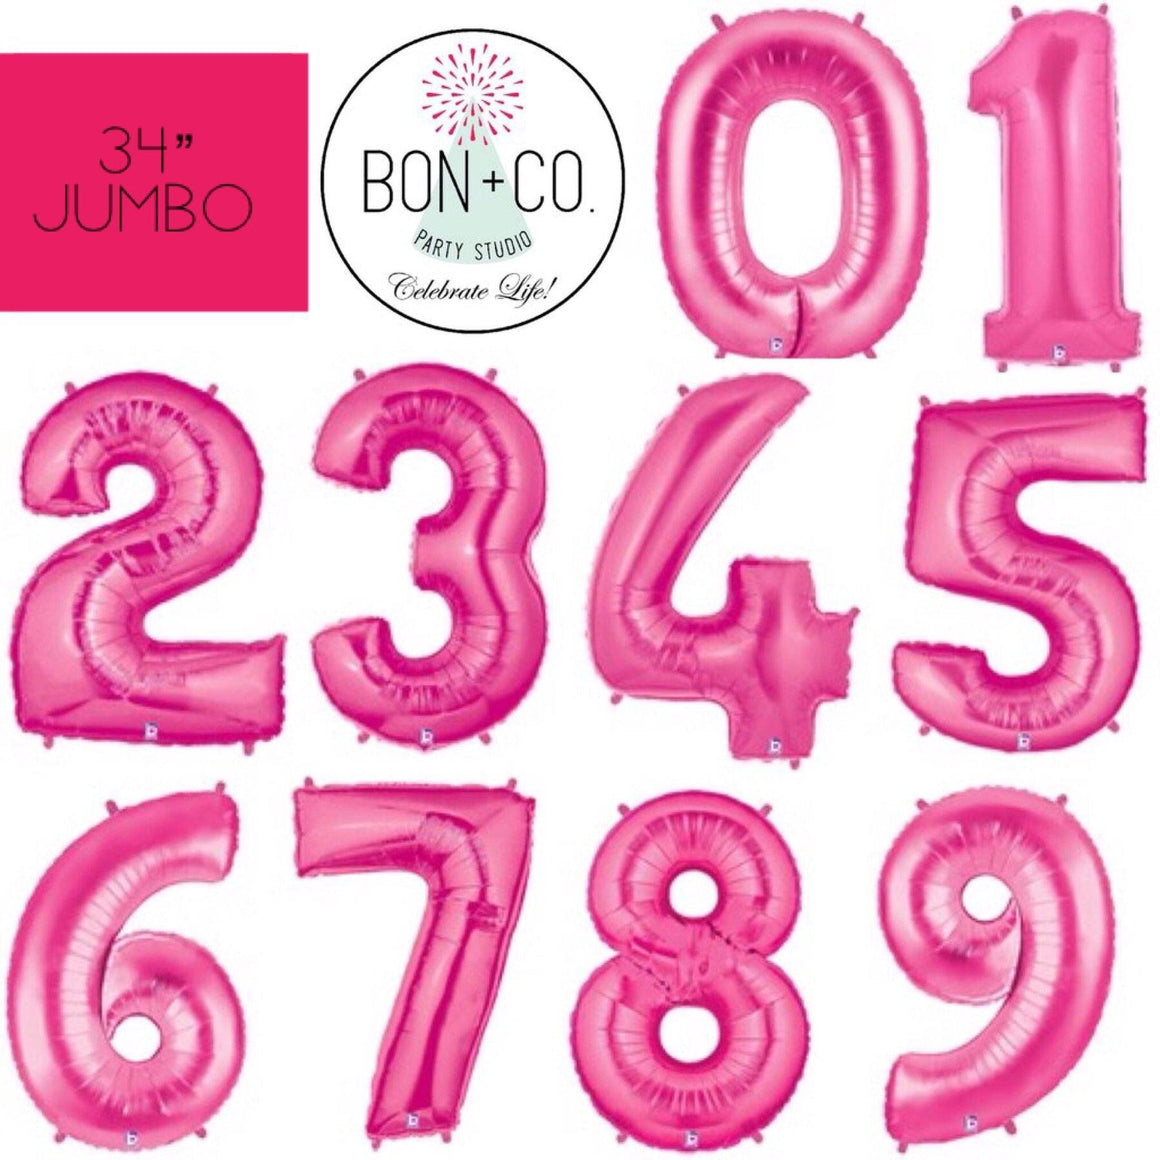 "BALLOON BAR - 34"" JUMBO NUMBER HOT PINK, Balloons, BETALLIC - Bon + Co. Party Studio"